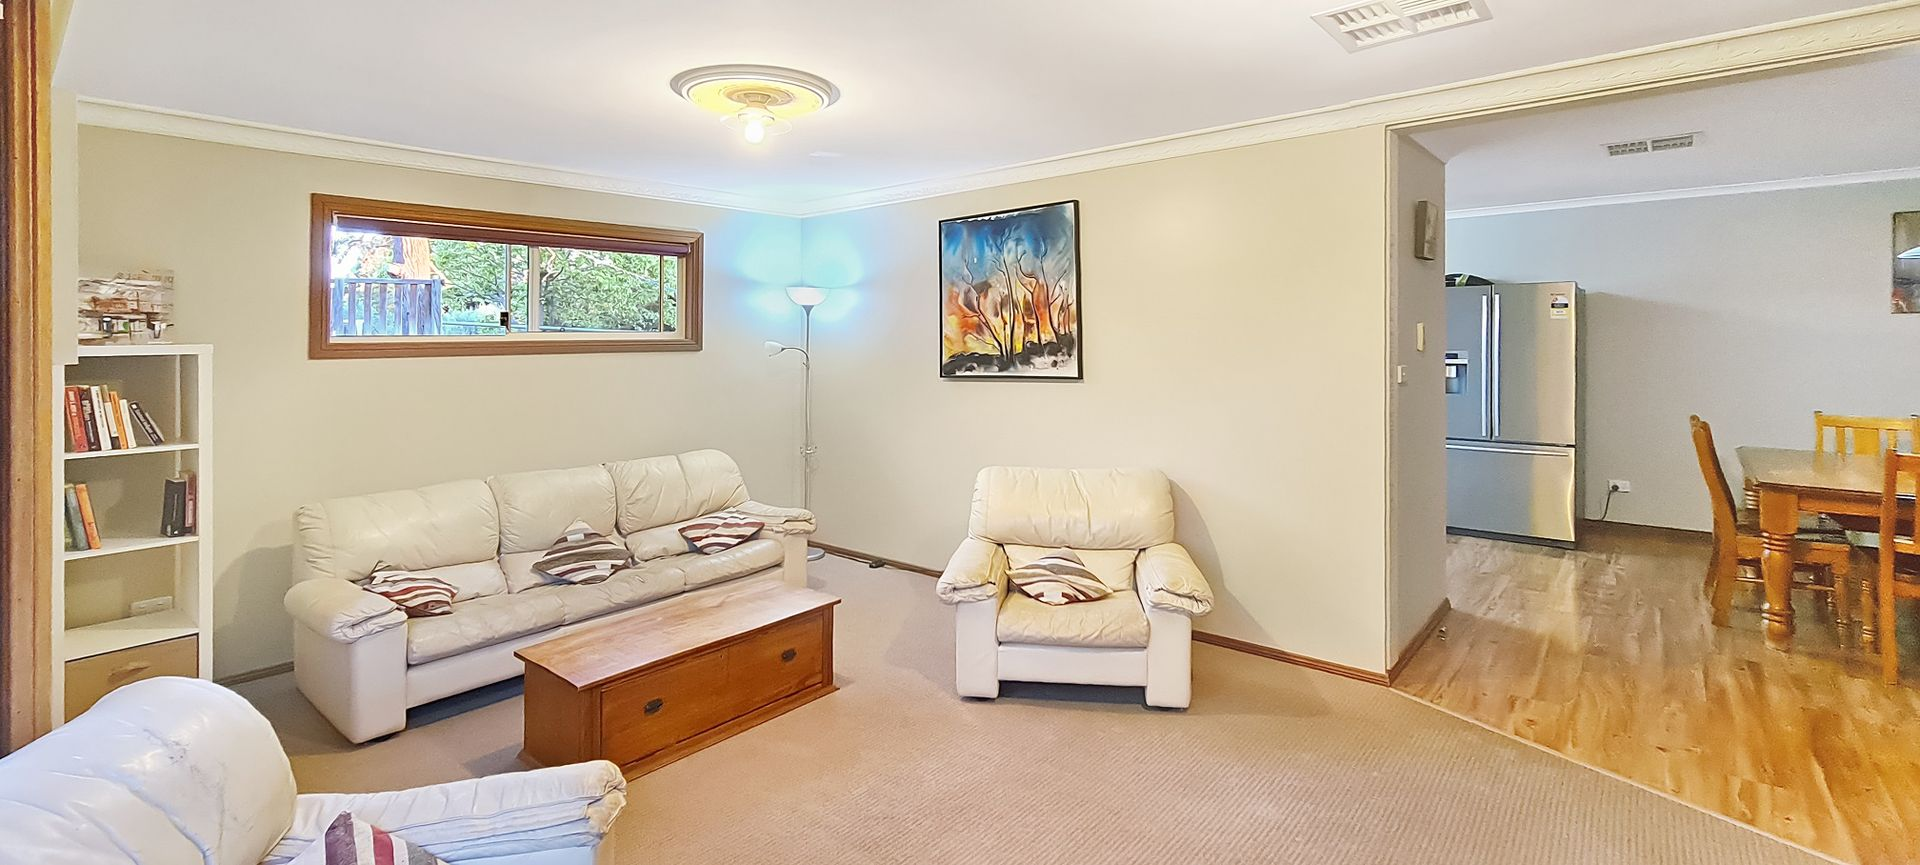 26-28B Currawong Crescent, Coleambally NSW 2707, Image 2